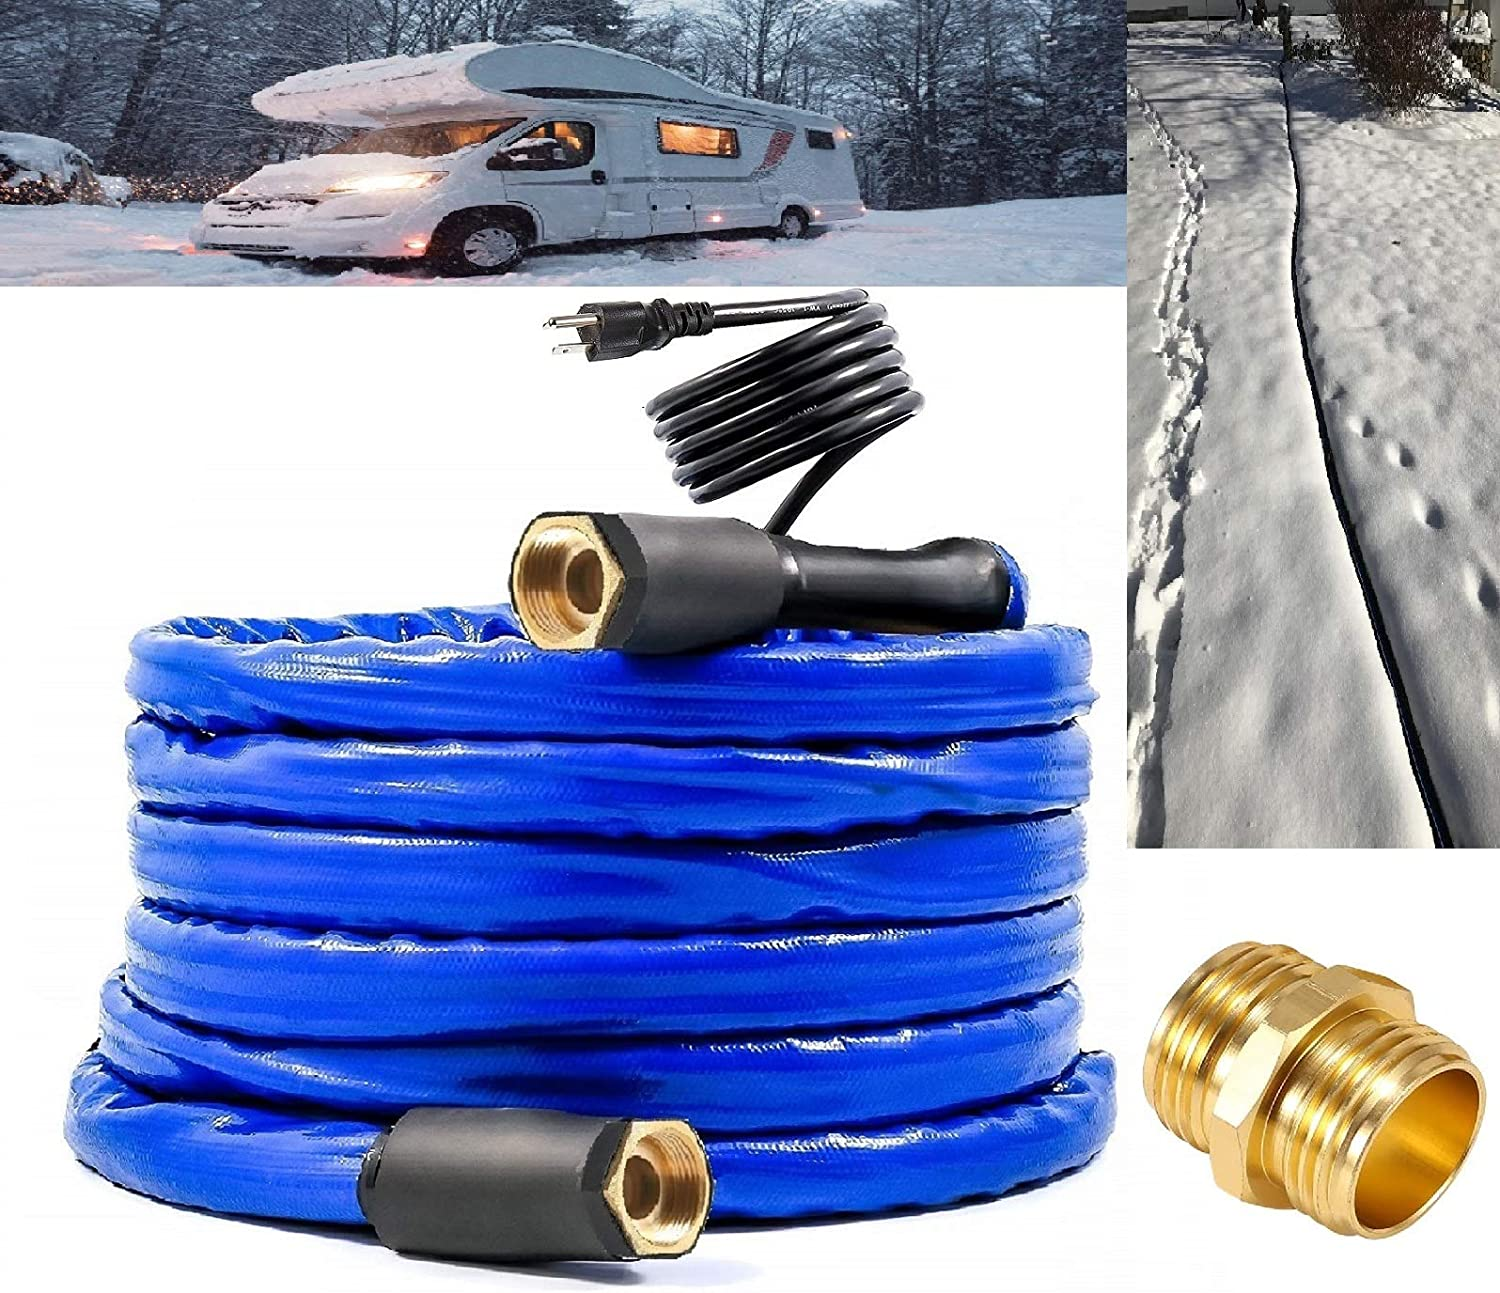 """H&G lifestyles Heated Water Hose for RV Outdoor Furniture 1/2"""" Inner Diameter Self-Regulating Withstand Temperatures Down to -40°F"""